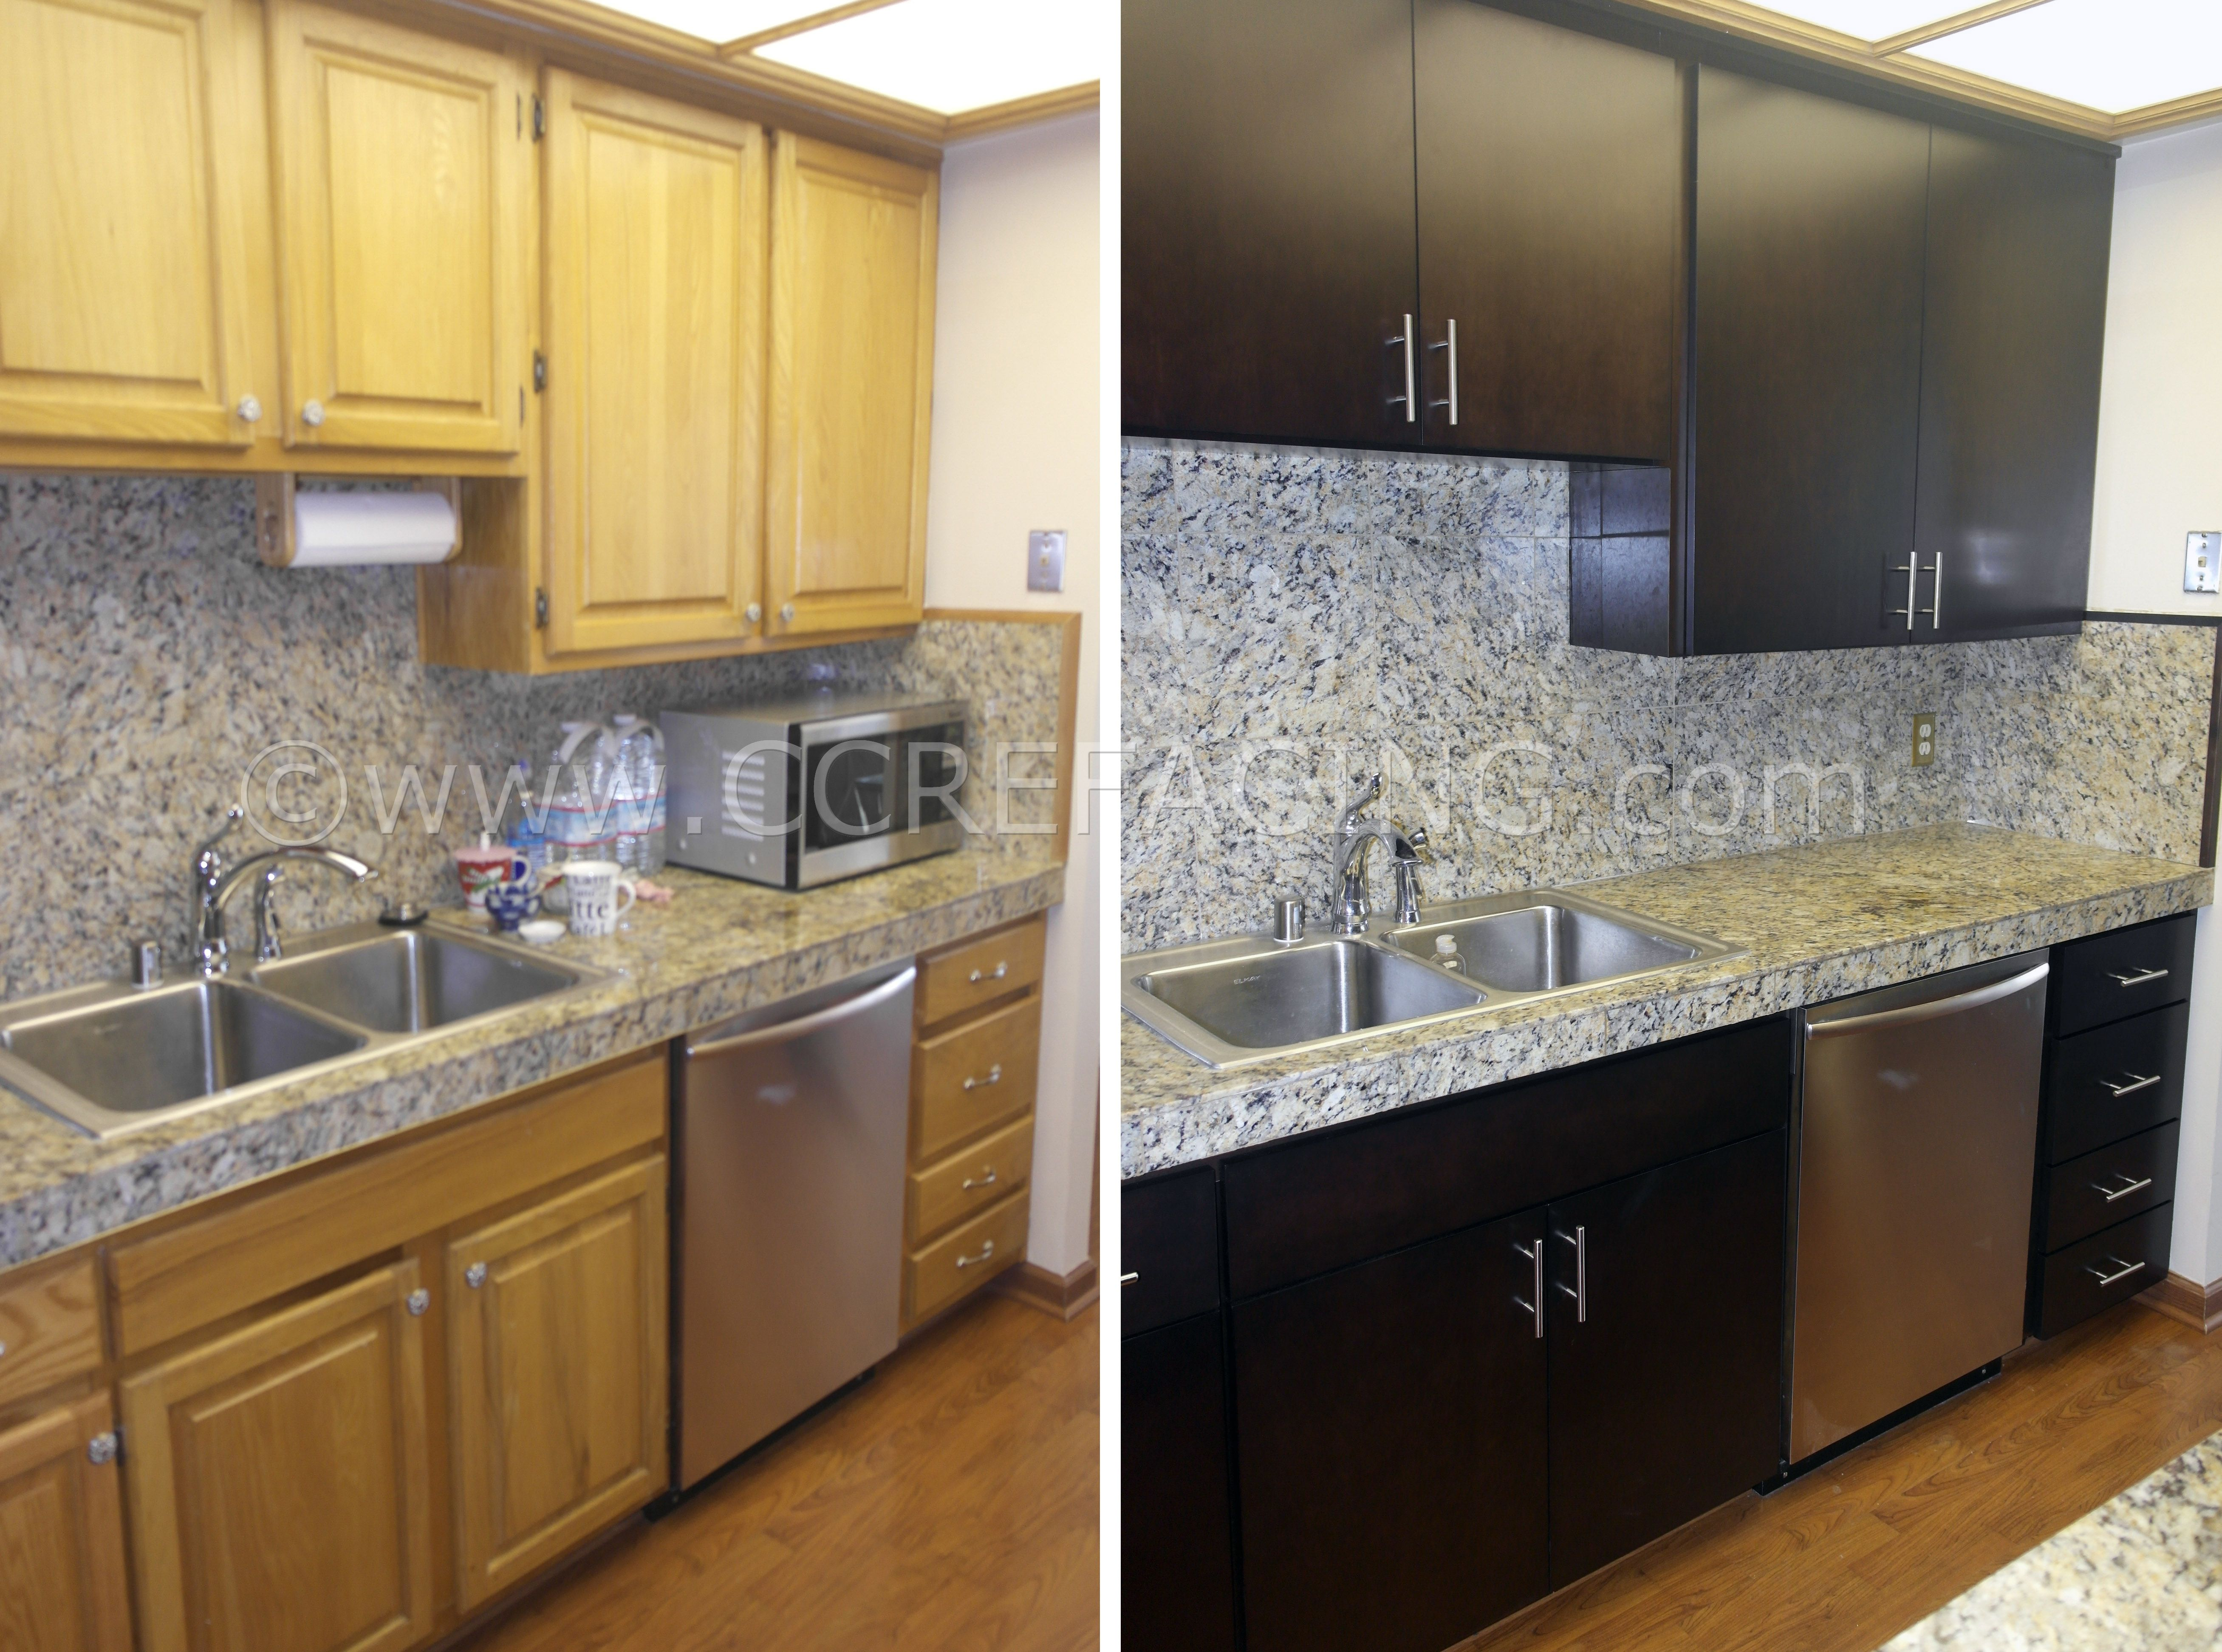 Wanut Creek Cabinet Reface Refacing With Dark Maple Slab Doors Cabinet Refacing Cabinet Solid Wood Cabinets